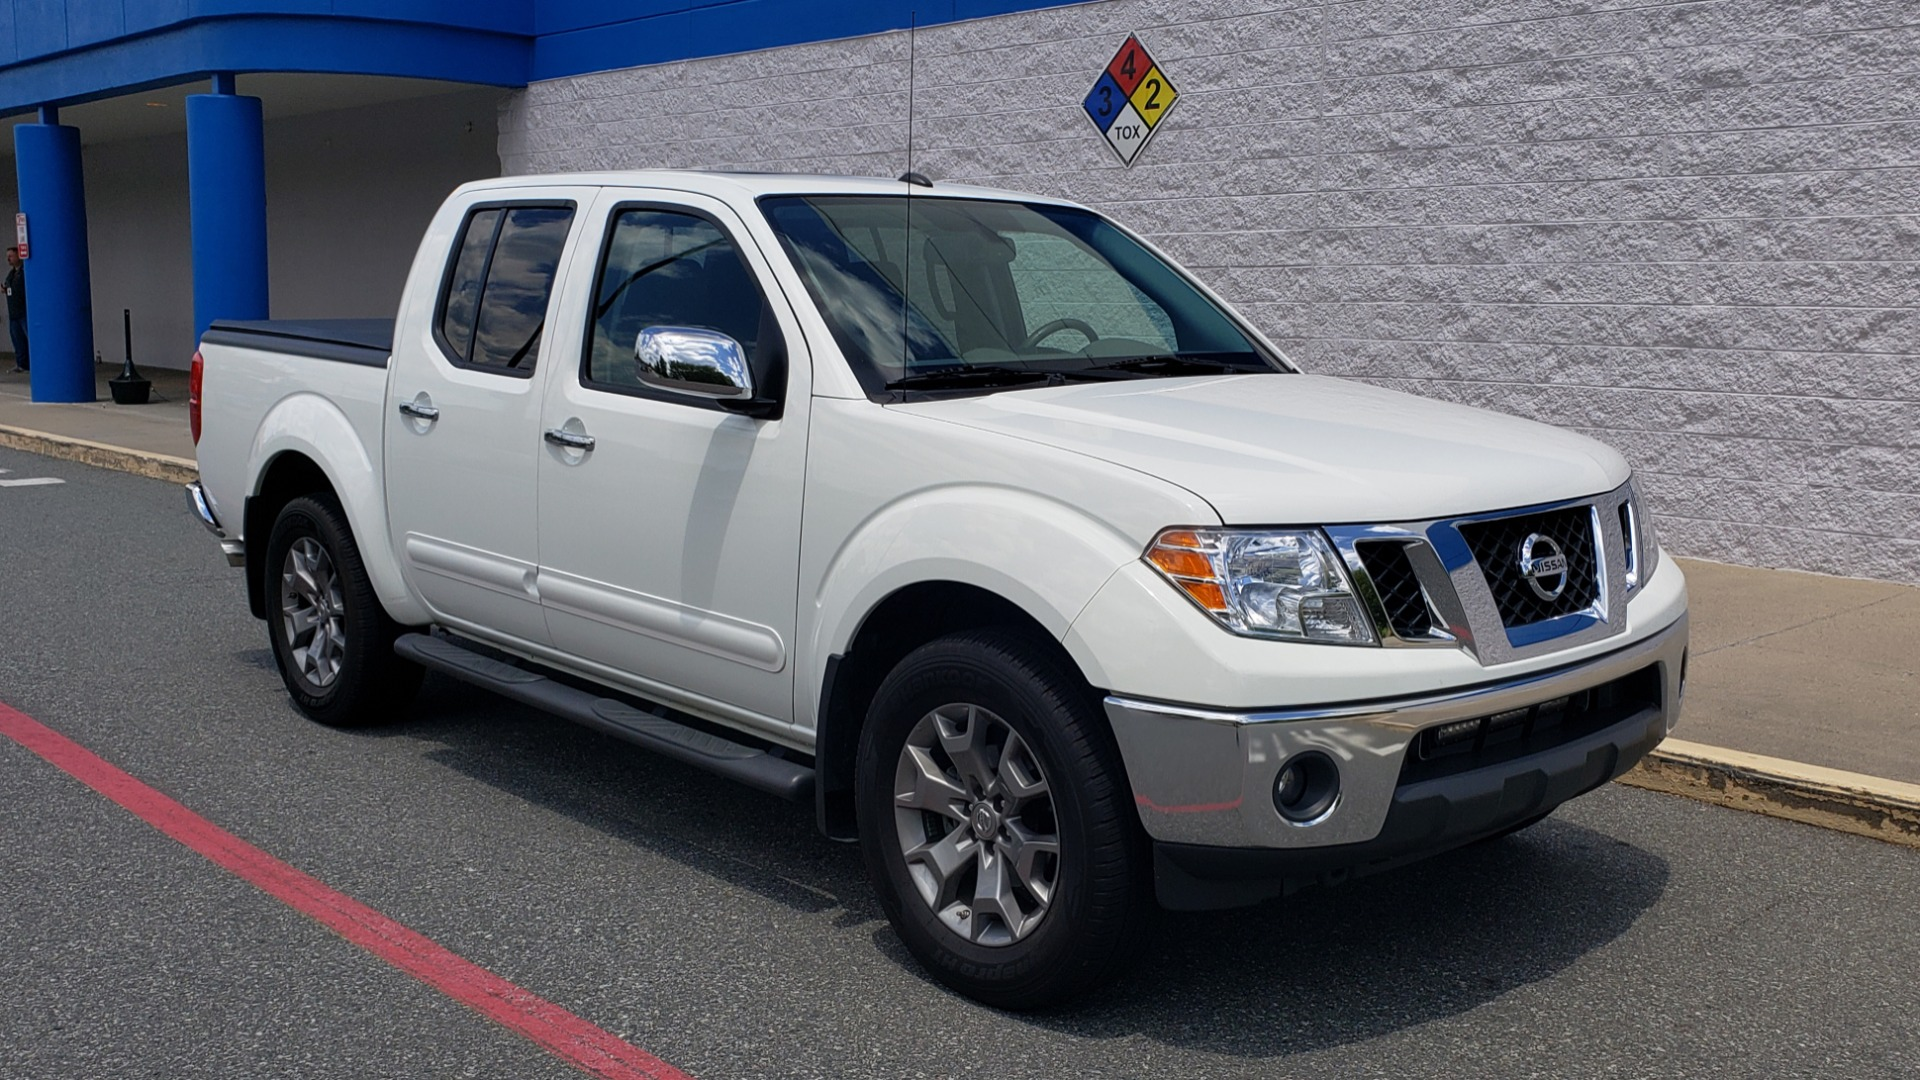 Used 2019 Nissan FRONTIER SL CREW CAB / 4X4 / NAV / SUNROOF / ROCKFORD FOSGATE / LOADED for sale $31,495 at Formula Imports in Charlotte NC 28227 2